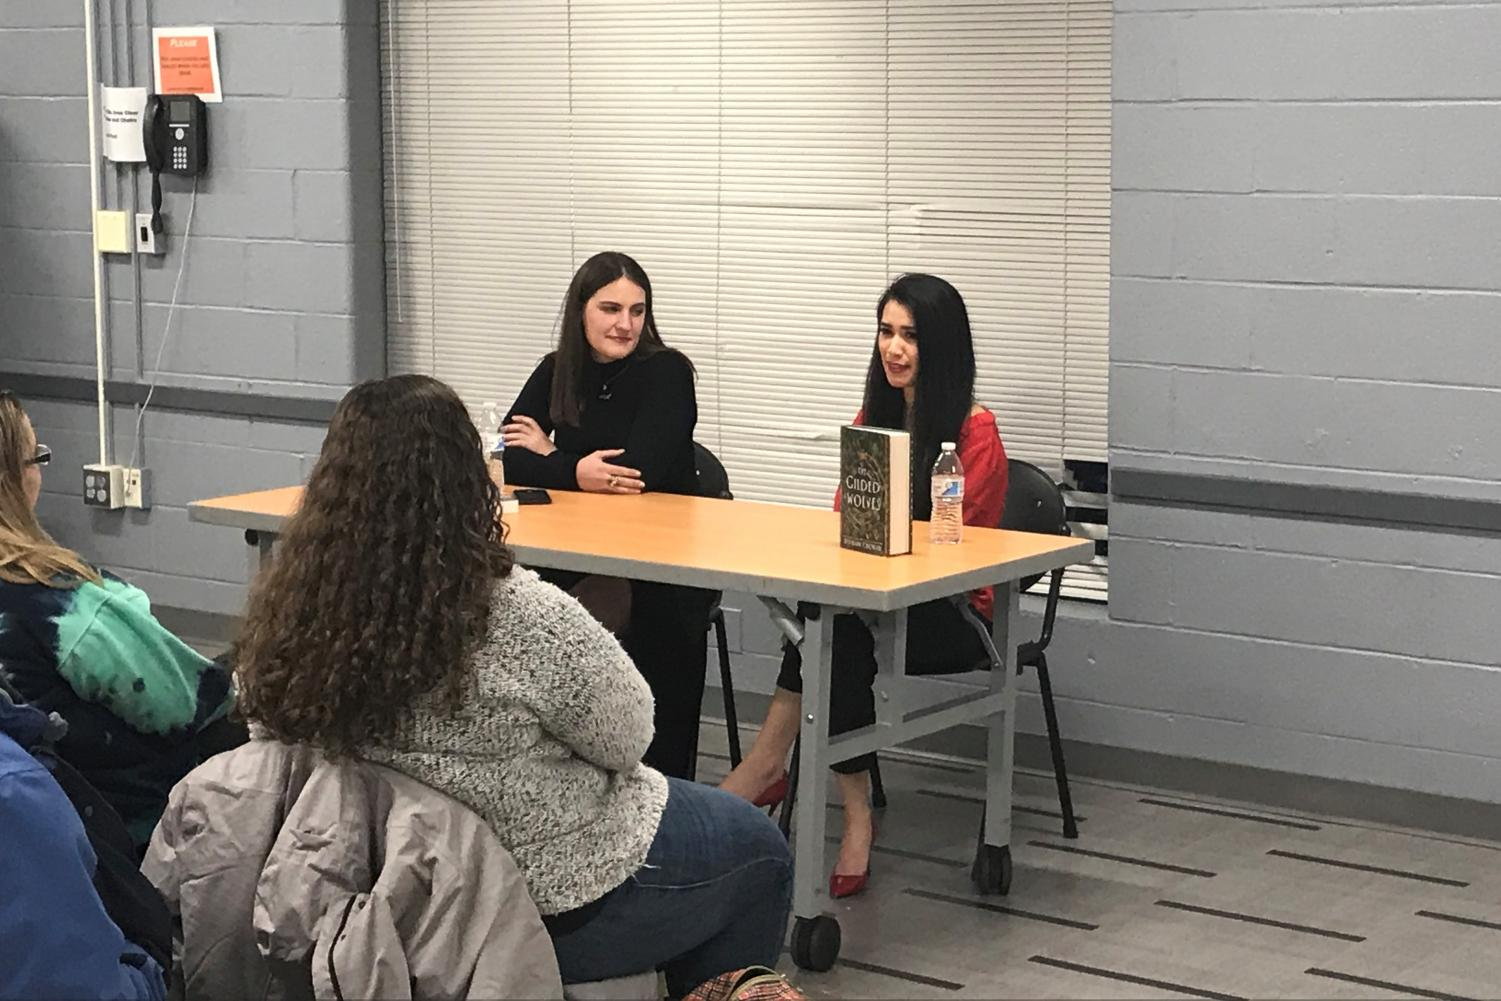 Authors Roshani Chokshi (right) and Sarah Lemon speak during a panel at Bethesda Library. The two talked about Chokshi's new book and gave advice for aspiring young writers.